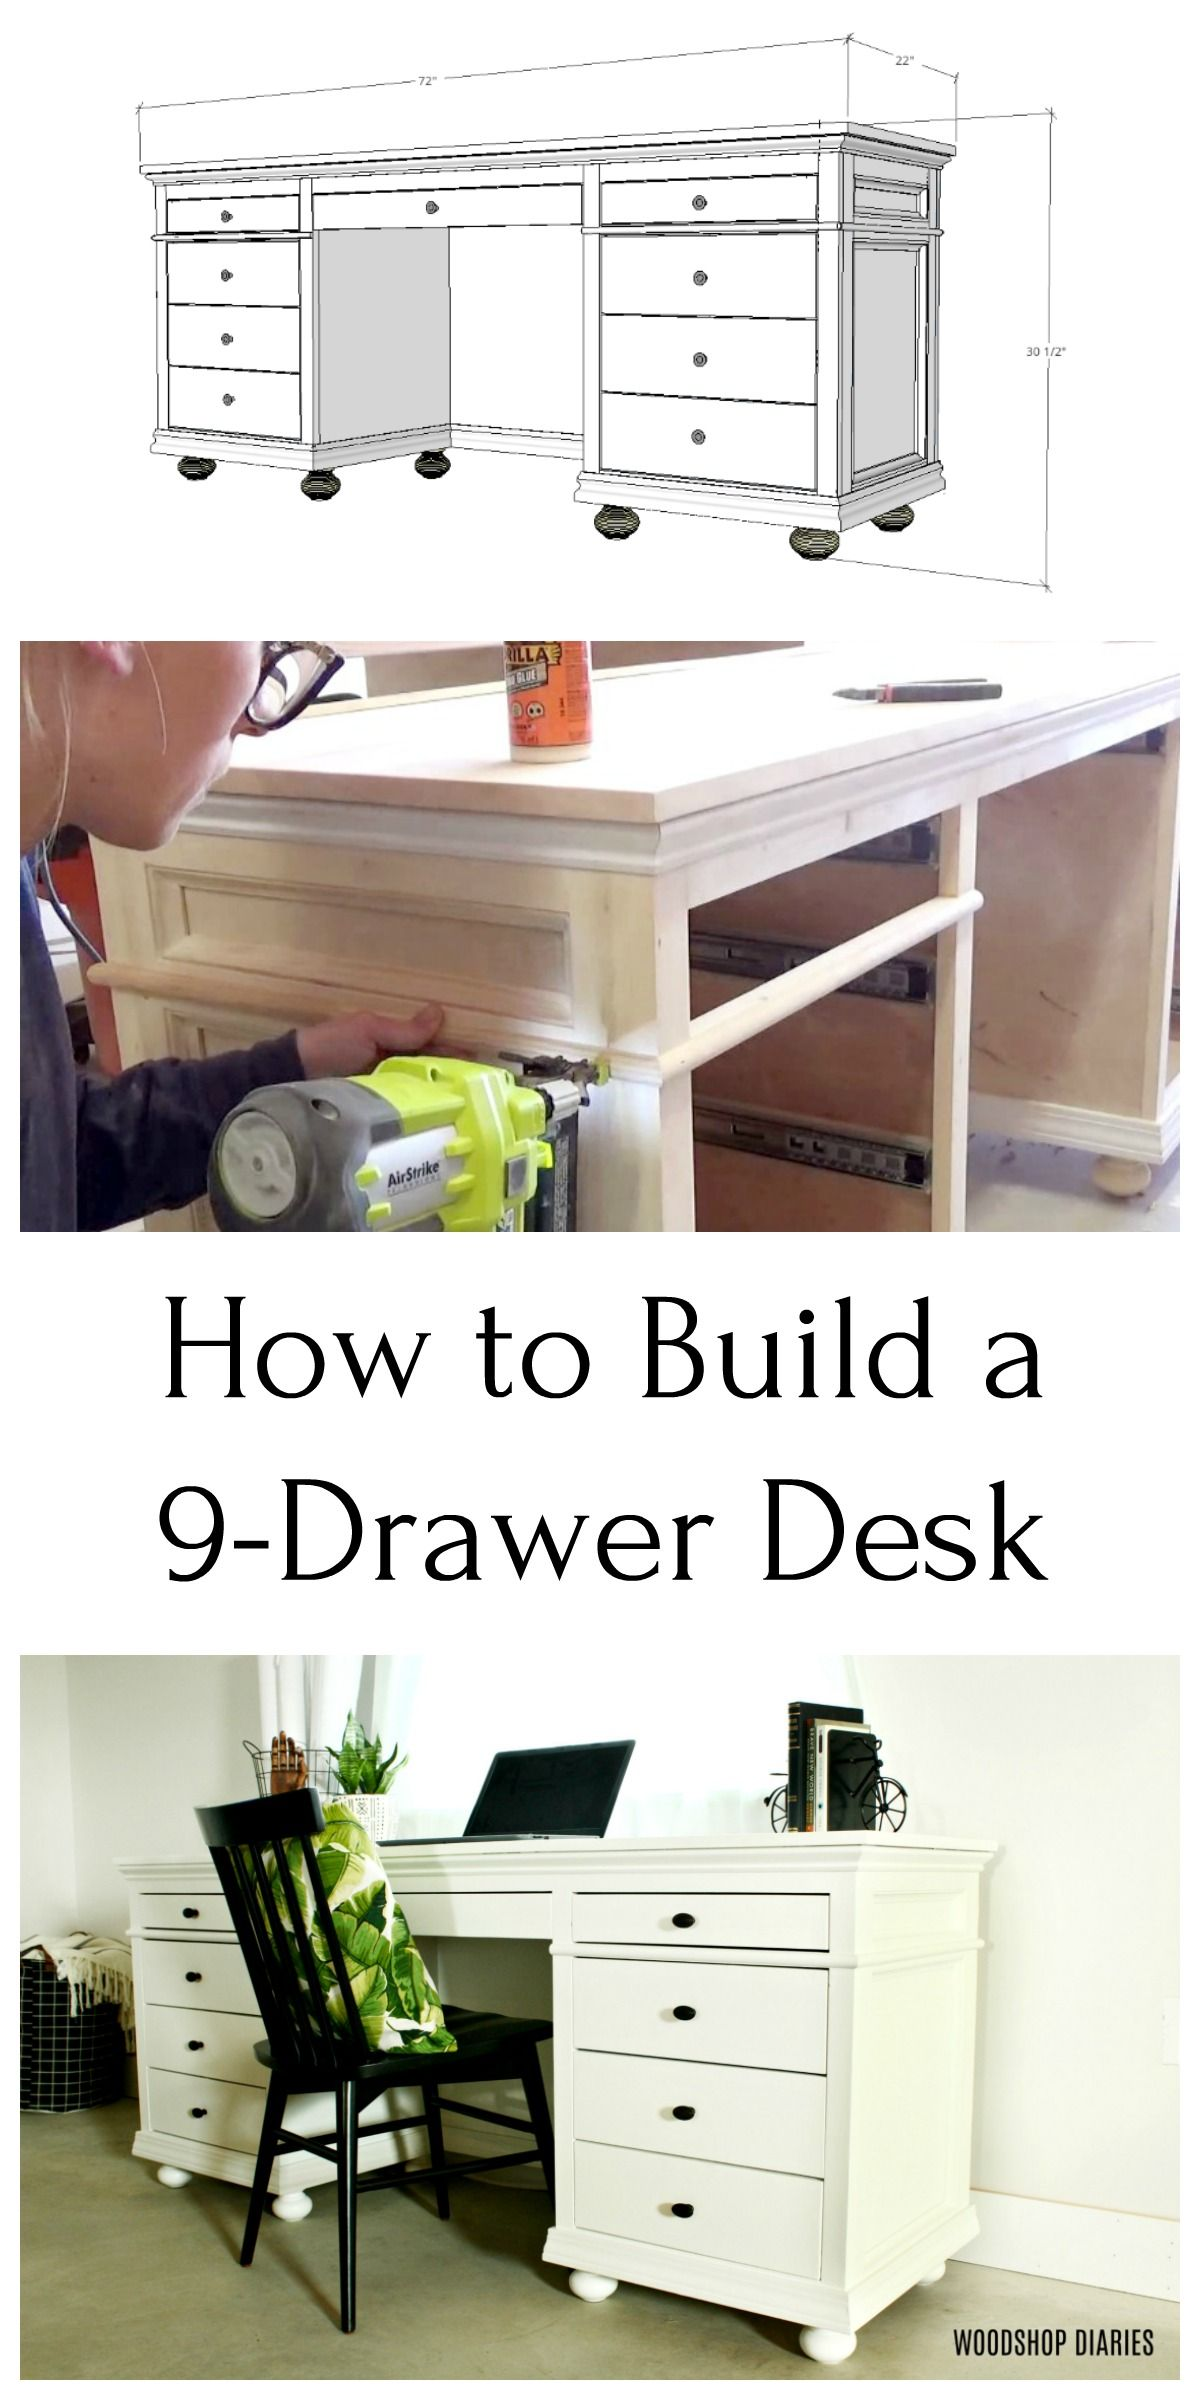 DIY Storage Desk For Home Office Diy storage desk, Diy